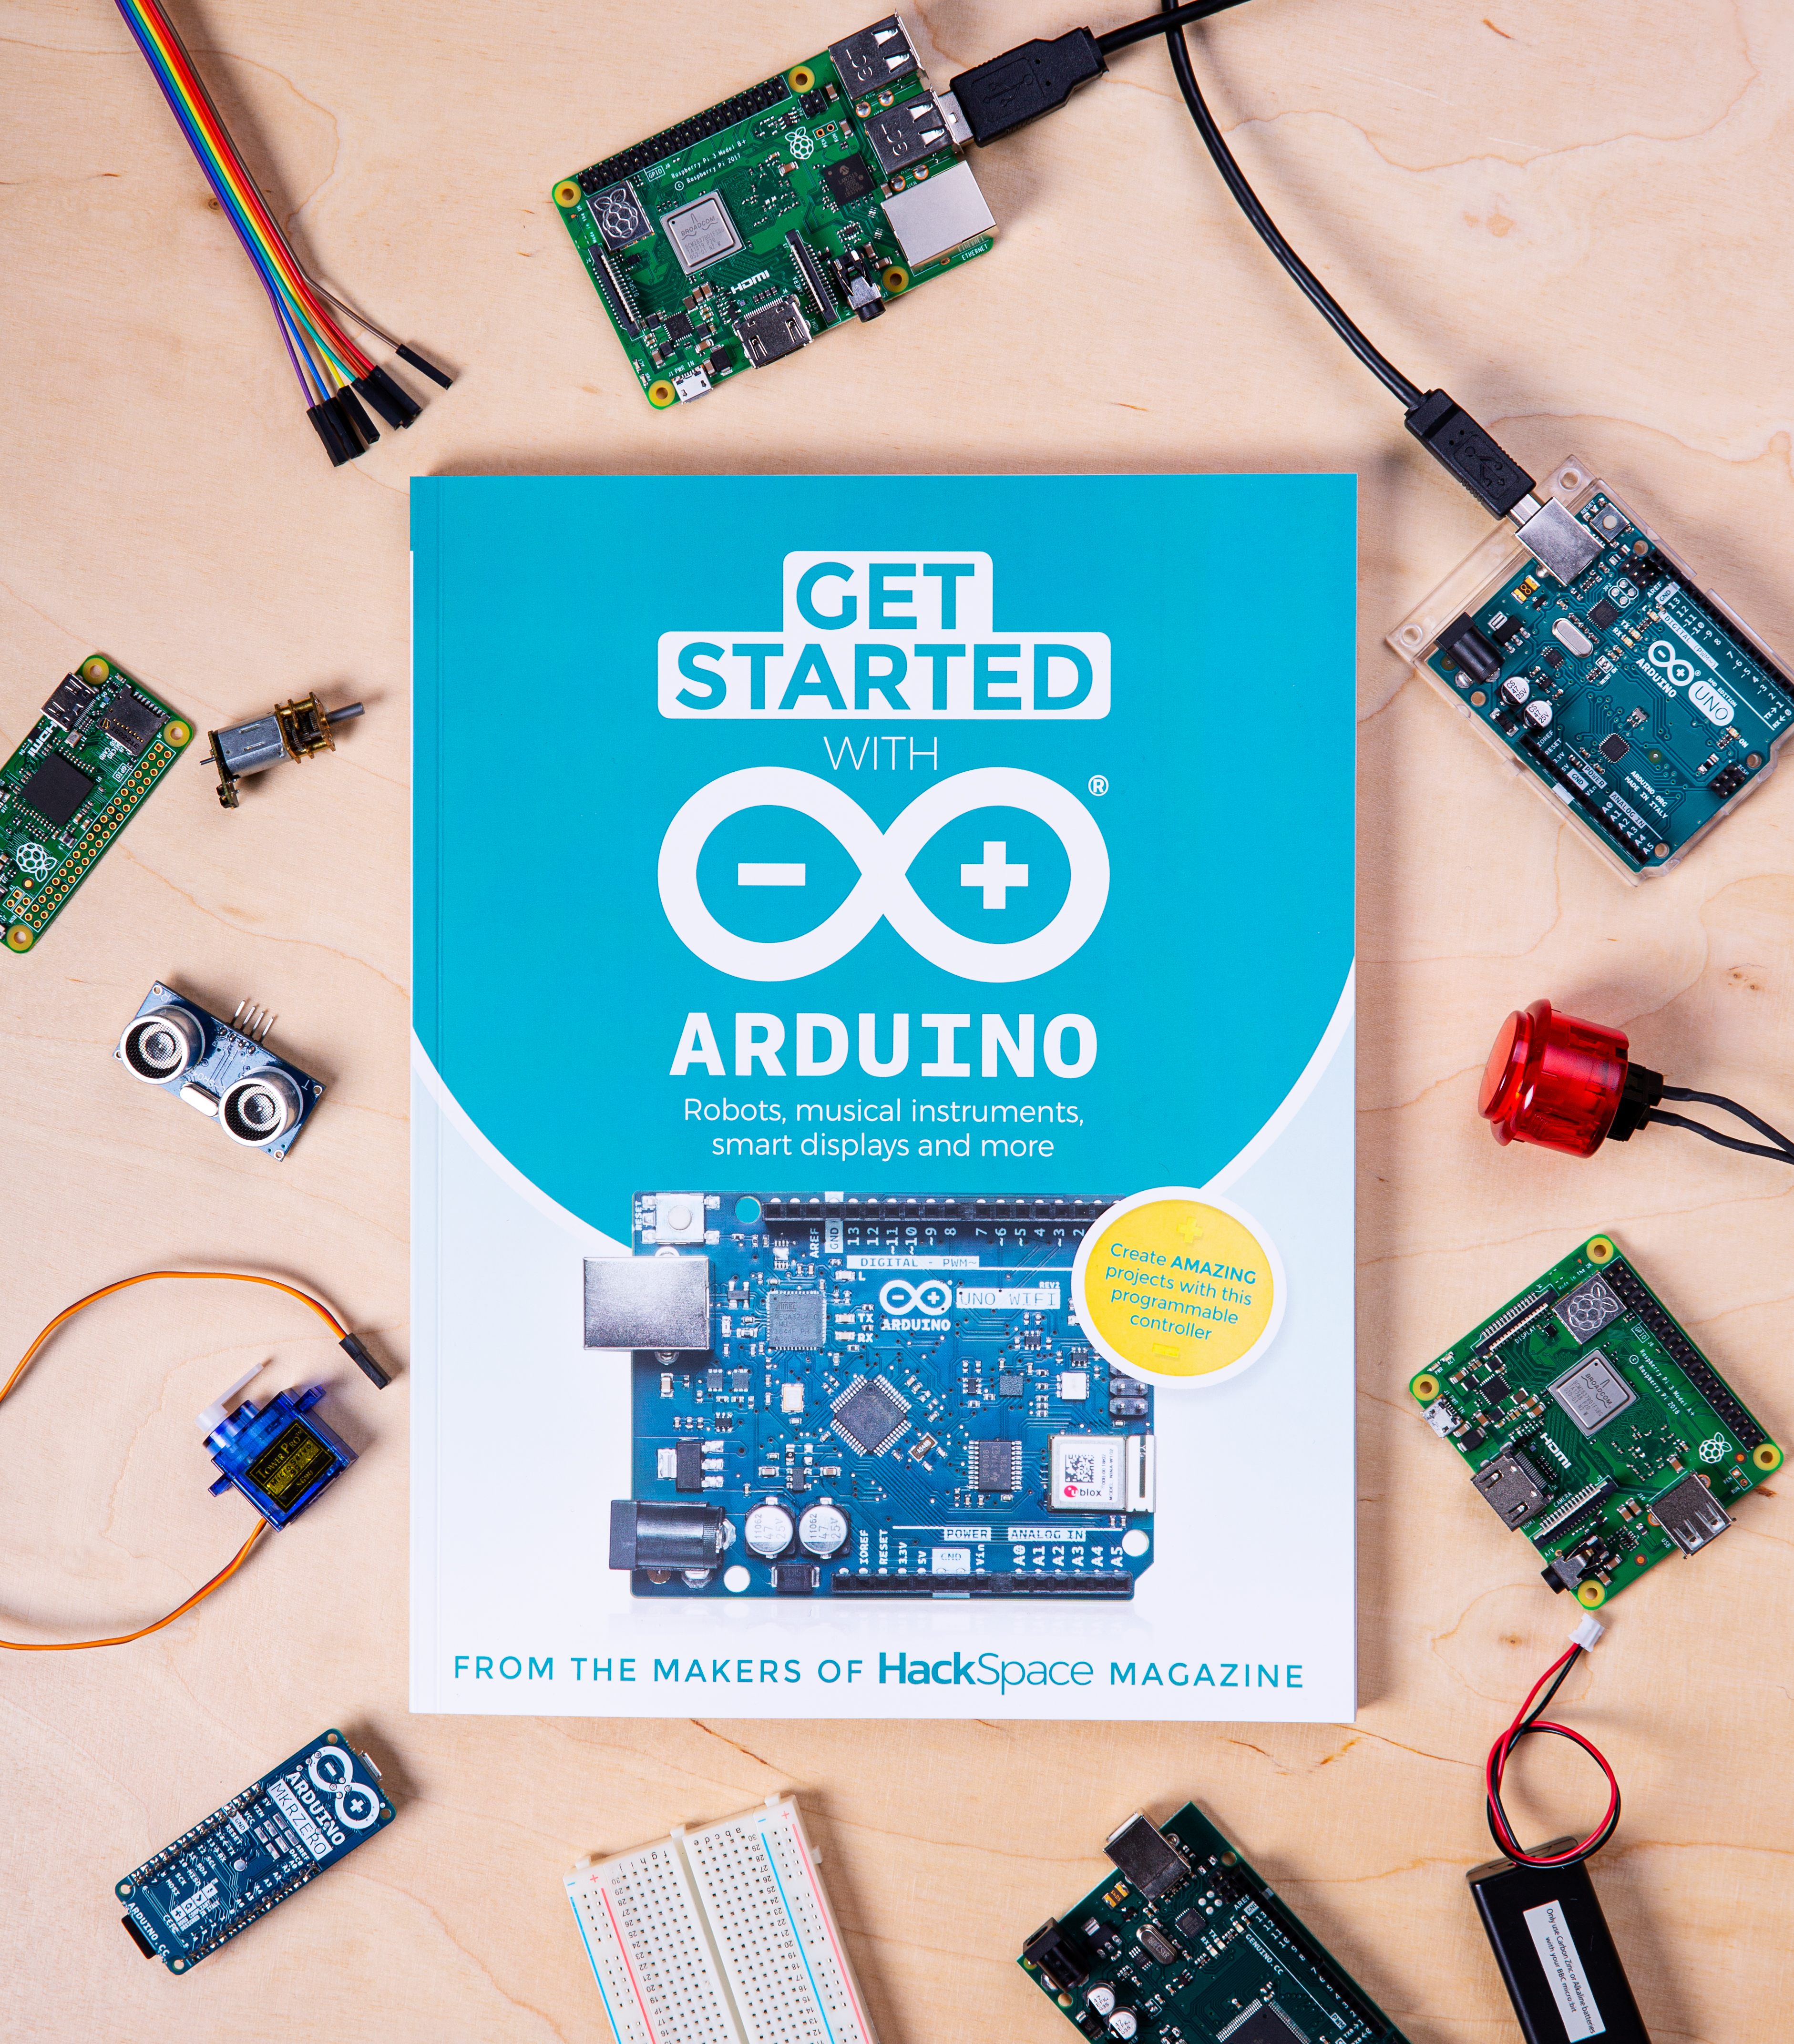 Get started with... Arduino? - Raspberry Pi